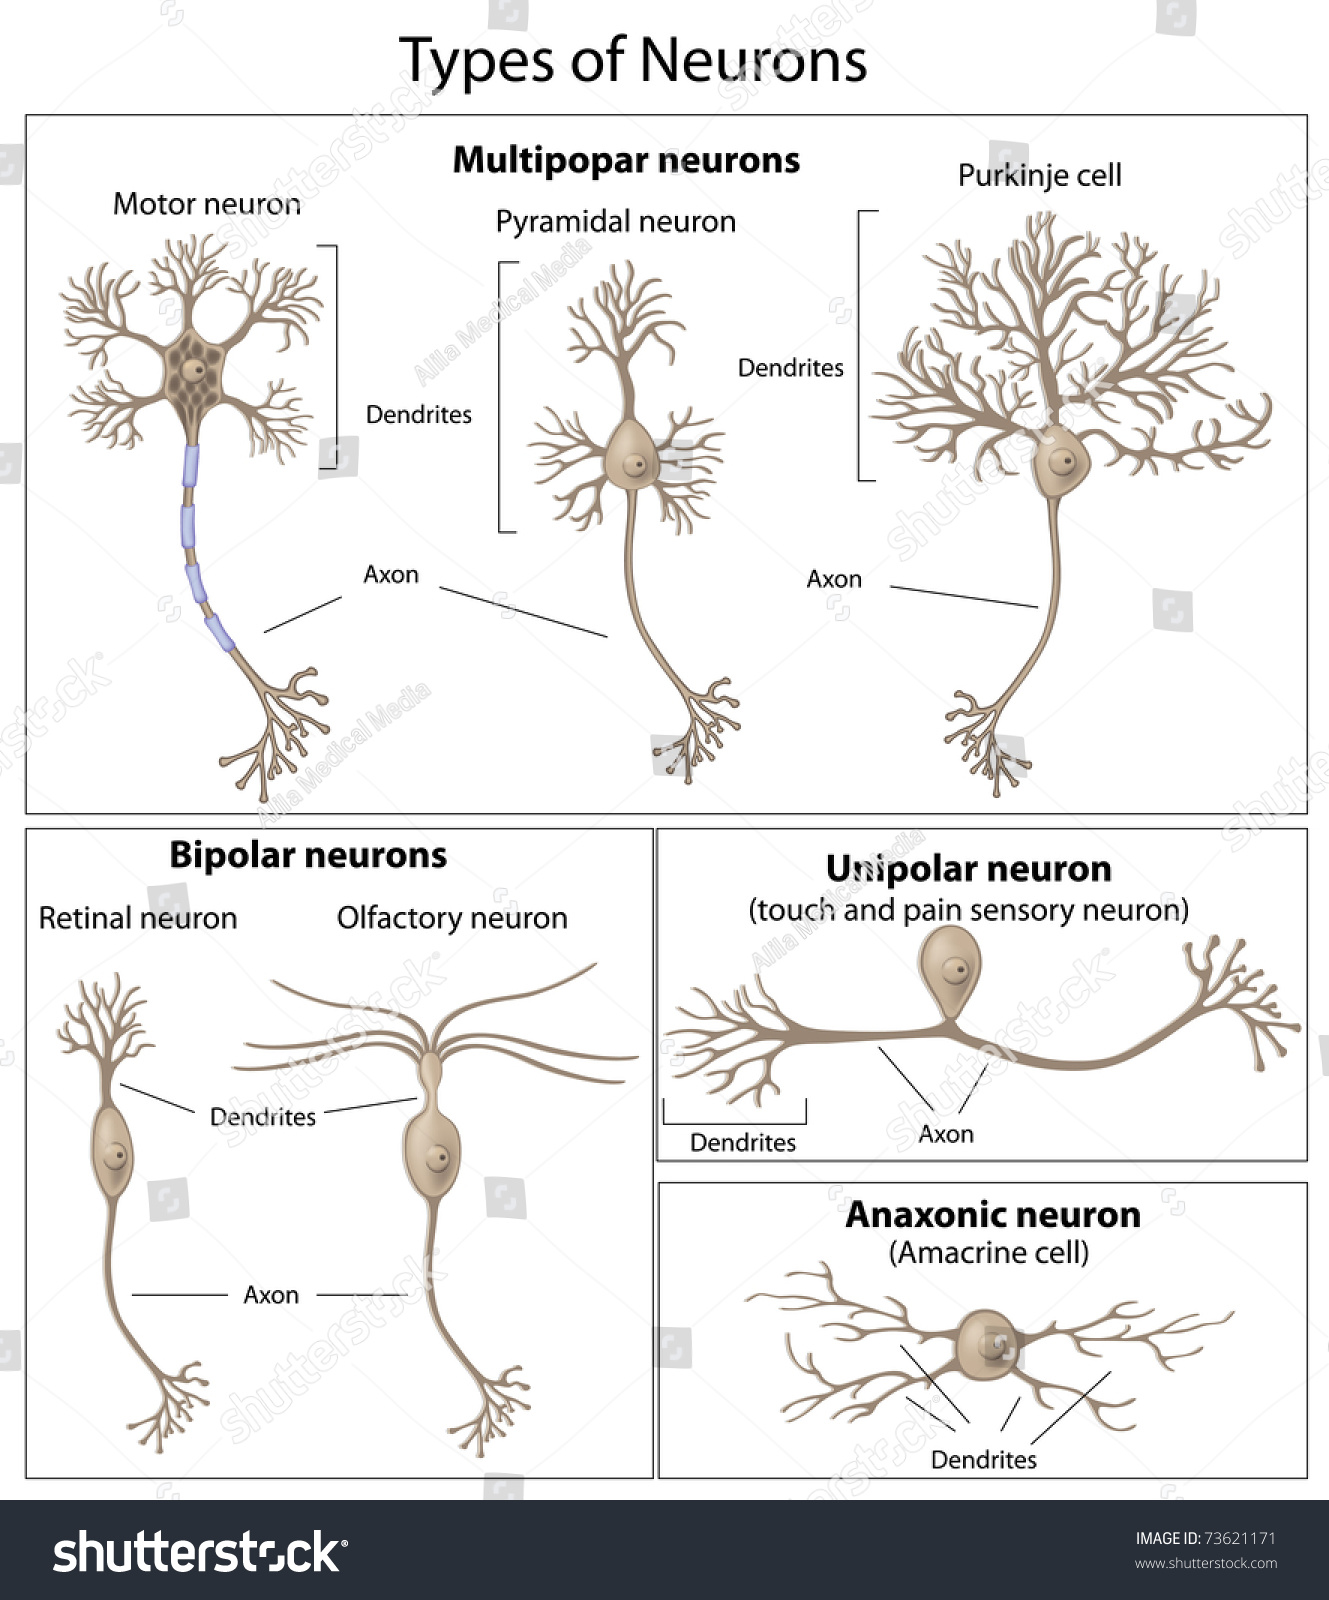 Types Neurons Stock Illustration 73621171 - Shutterstock